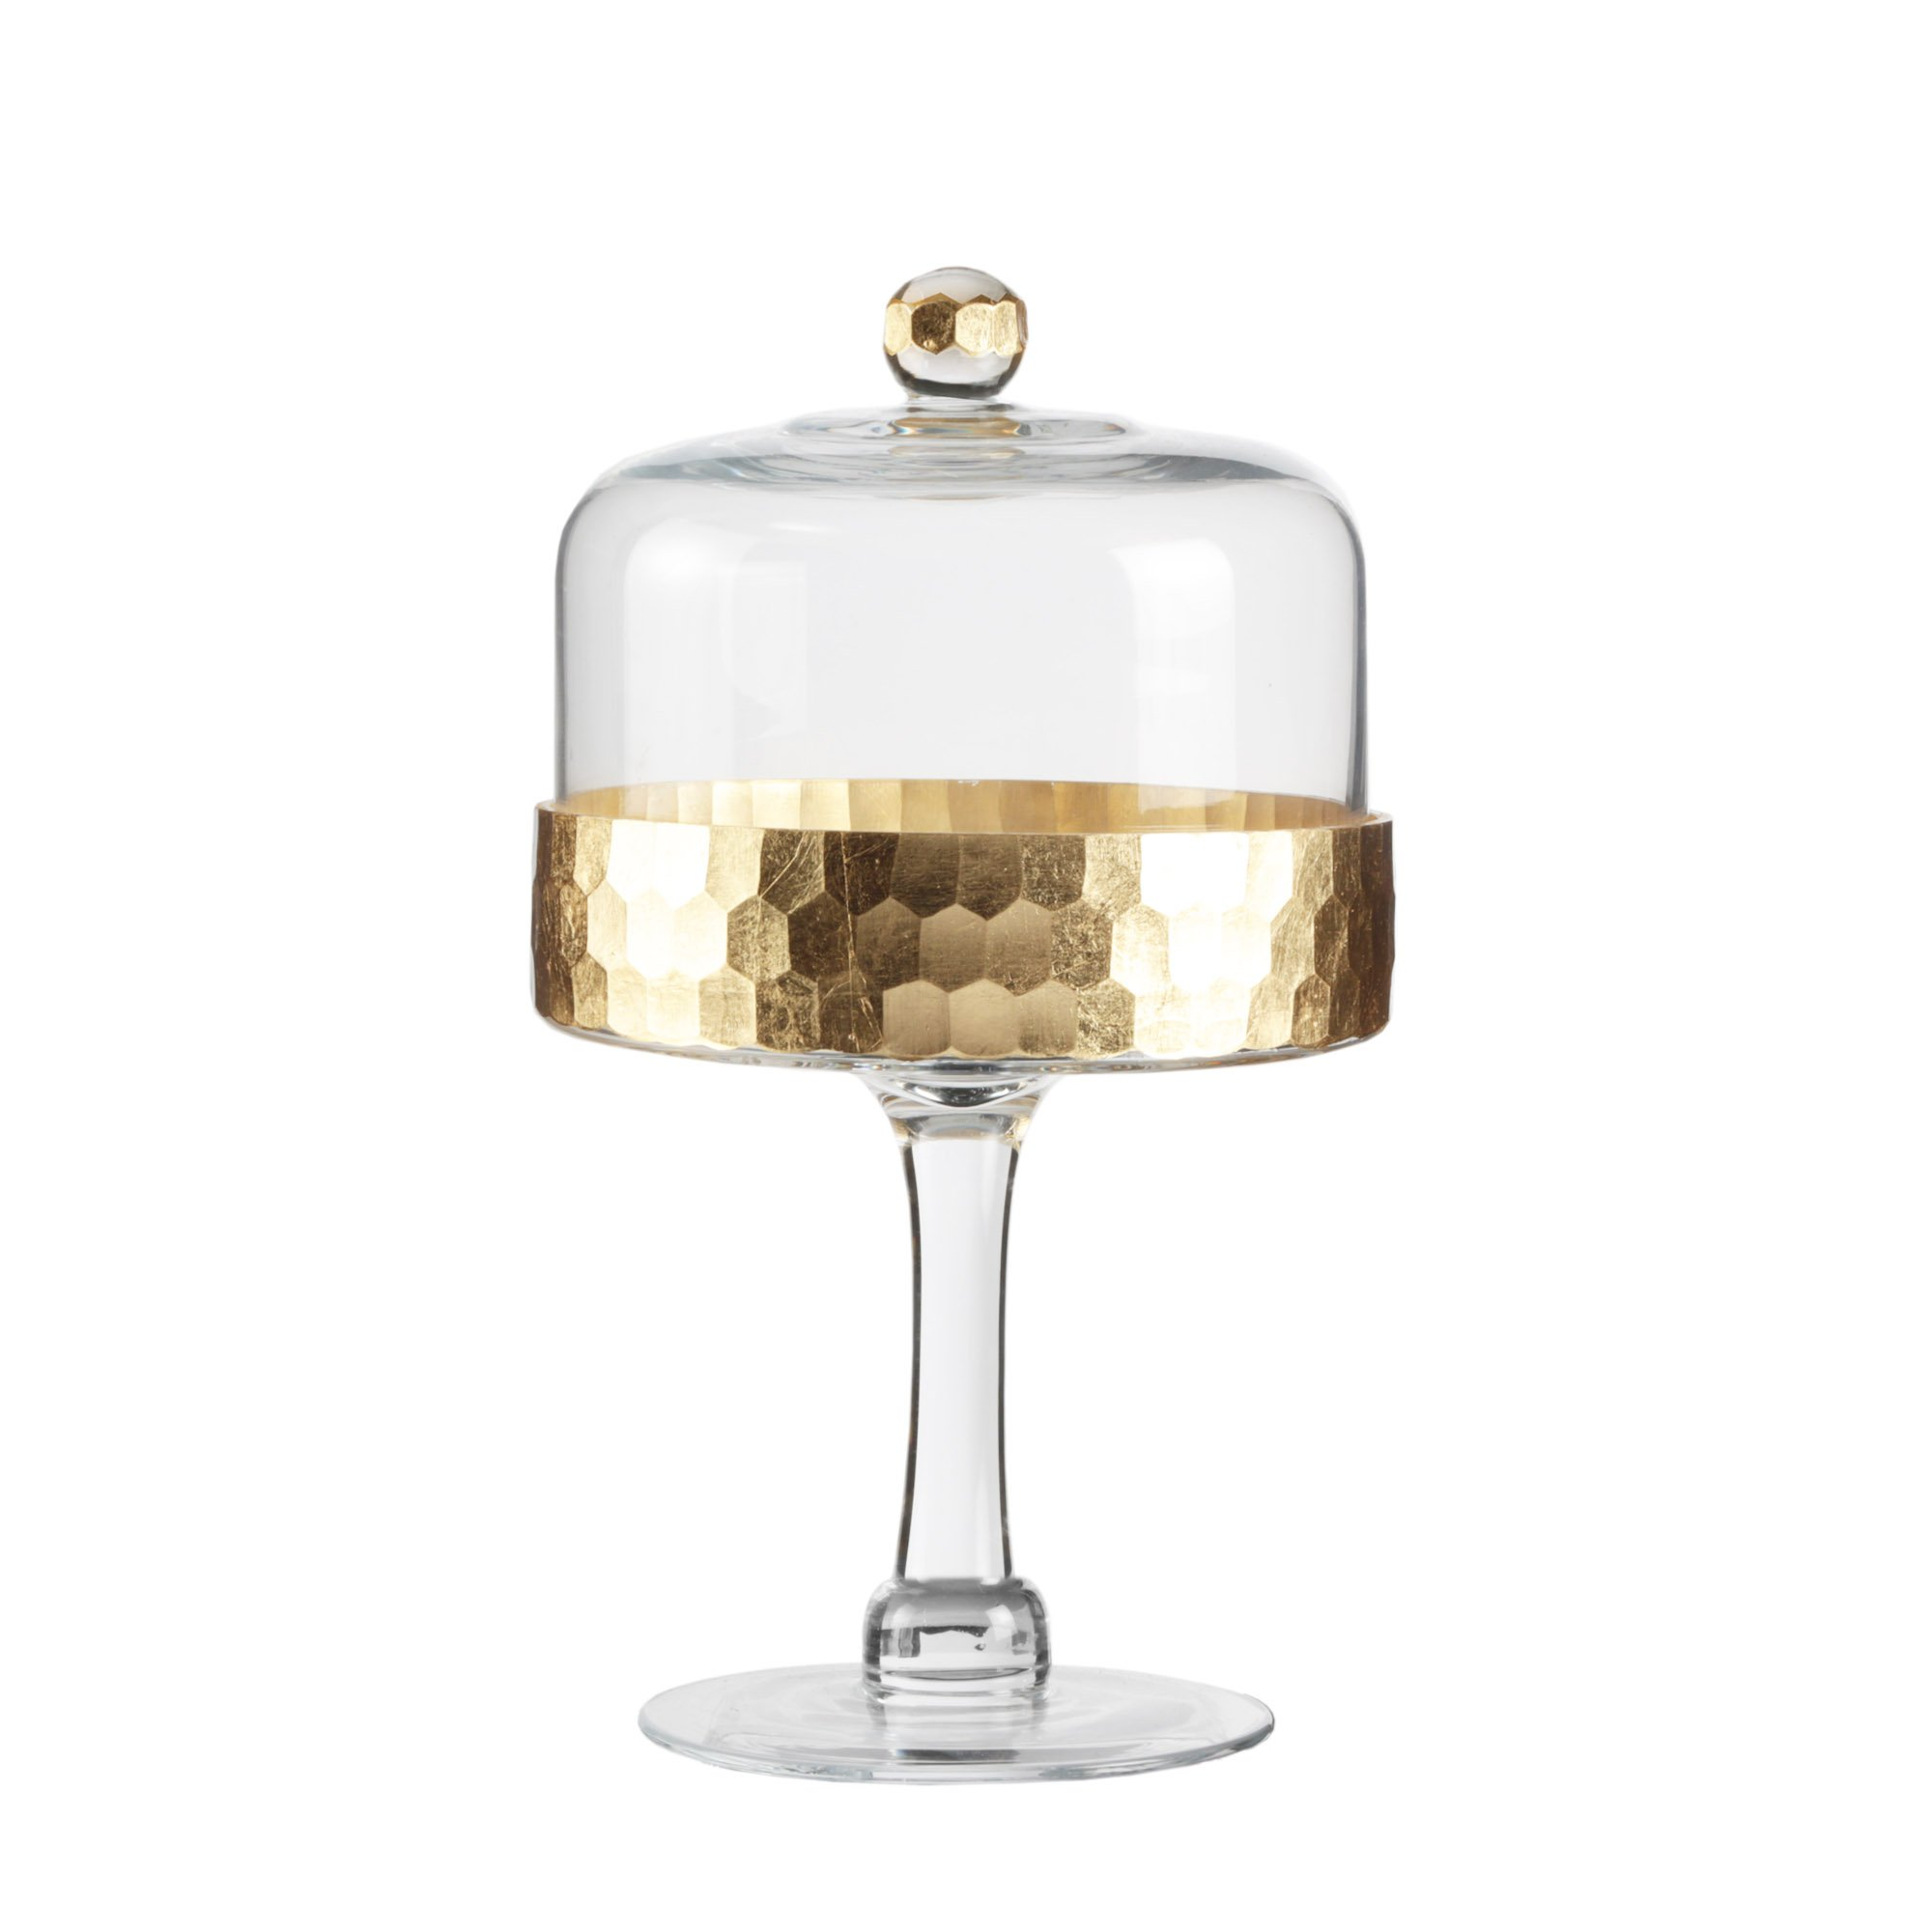 Fitz & Floyd 212705-11PD Daphne Gold Glass Pedestal Plate with Dome